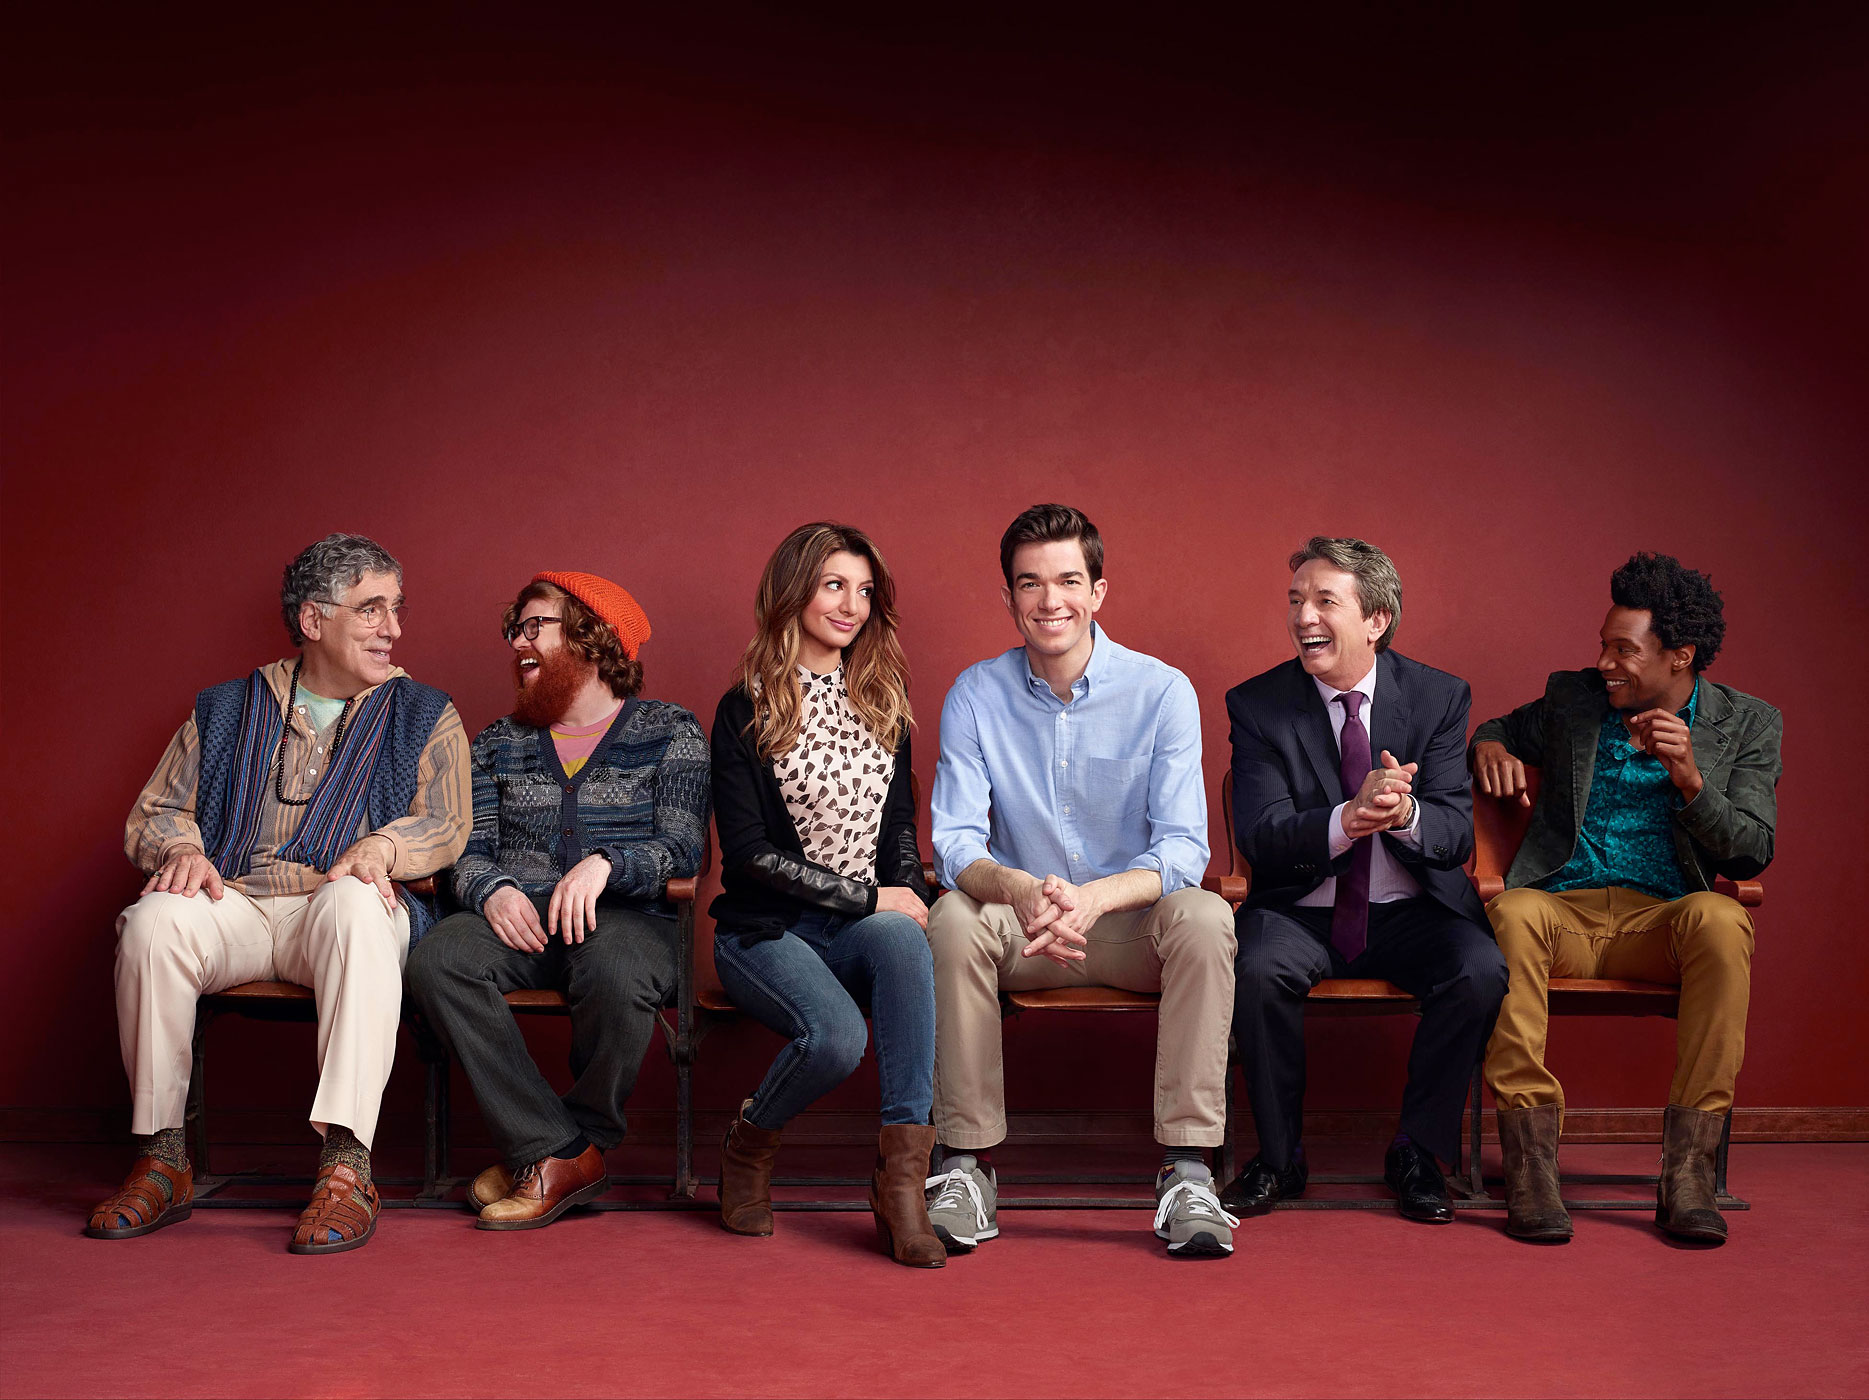 Among others in the diverse, experienced cast for Mulaney are Elliot Gould, Zack Pearlman, fellow SNL alum Nasim Pedrad, Martin Short and Seaton Smith. If the show doesn't prove successful, it won't be for lack of talent.